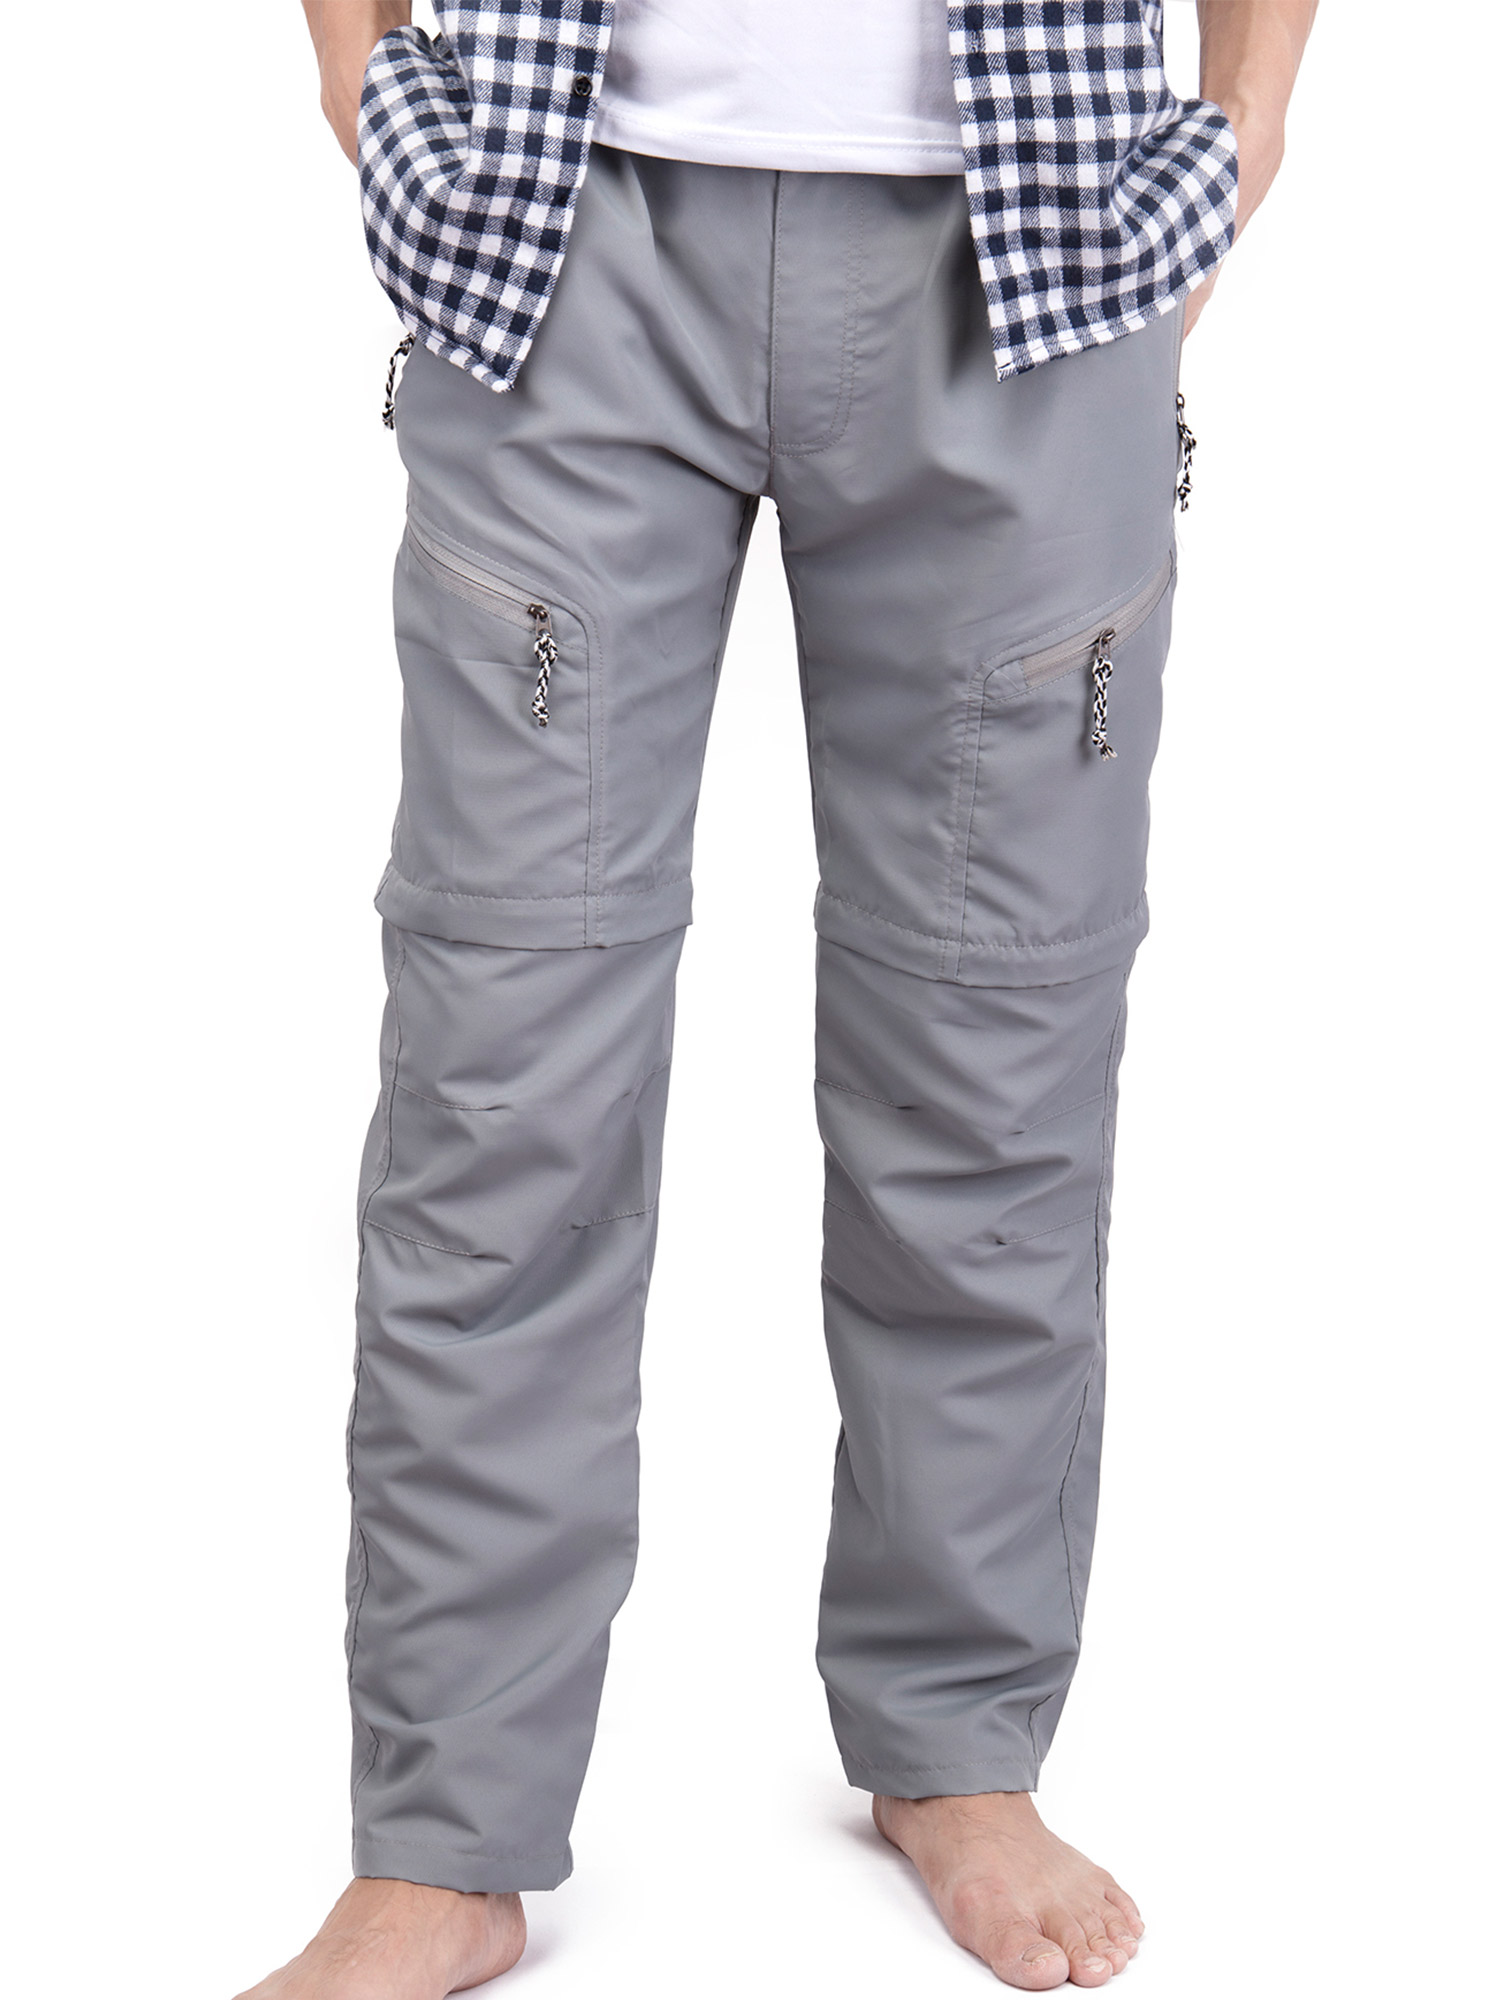 Mens Outdoor Sun Protection Quick Dry Convertible Lightweight Hiking Fishing Zip Off Cargo Work Pant